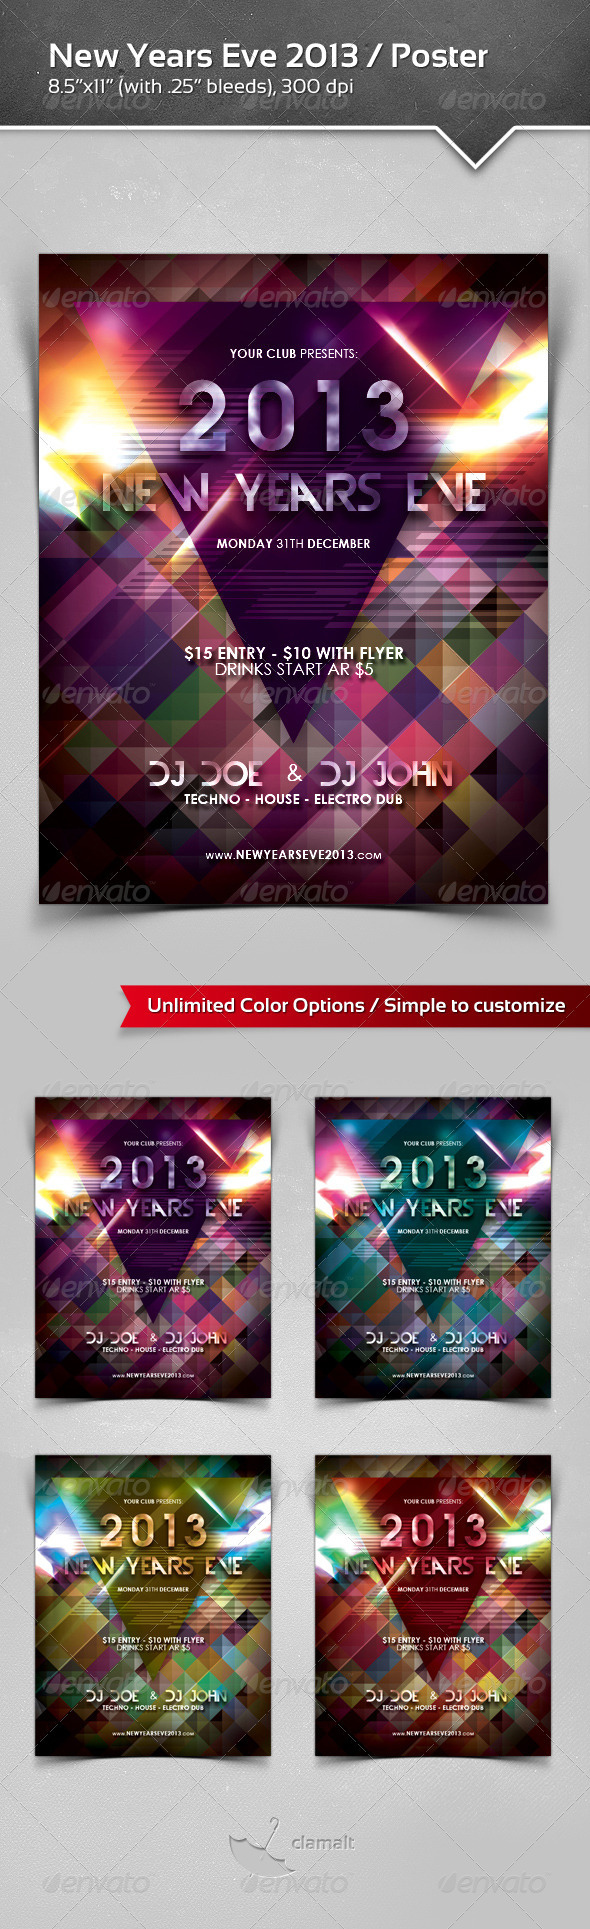 GraphicRiver New Years Eve 2013 Poster 3655161